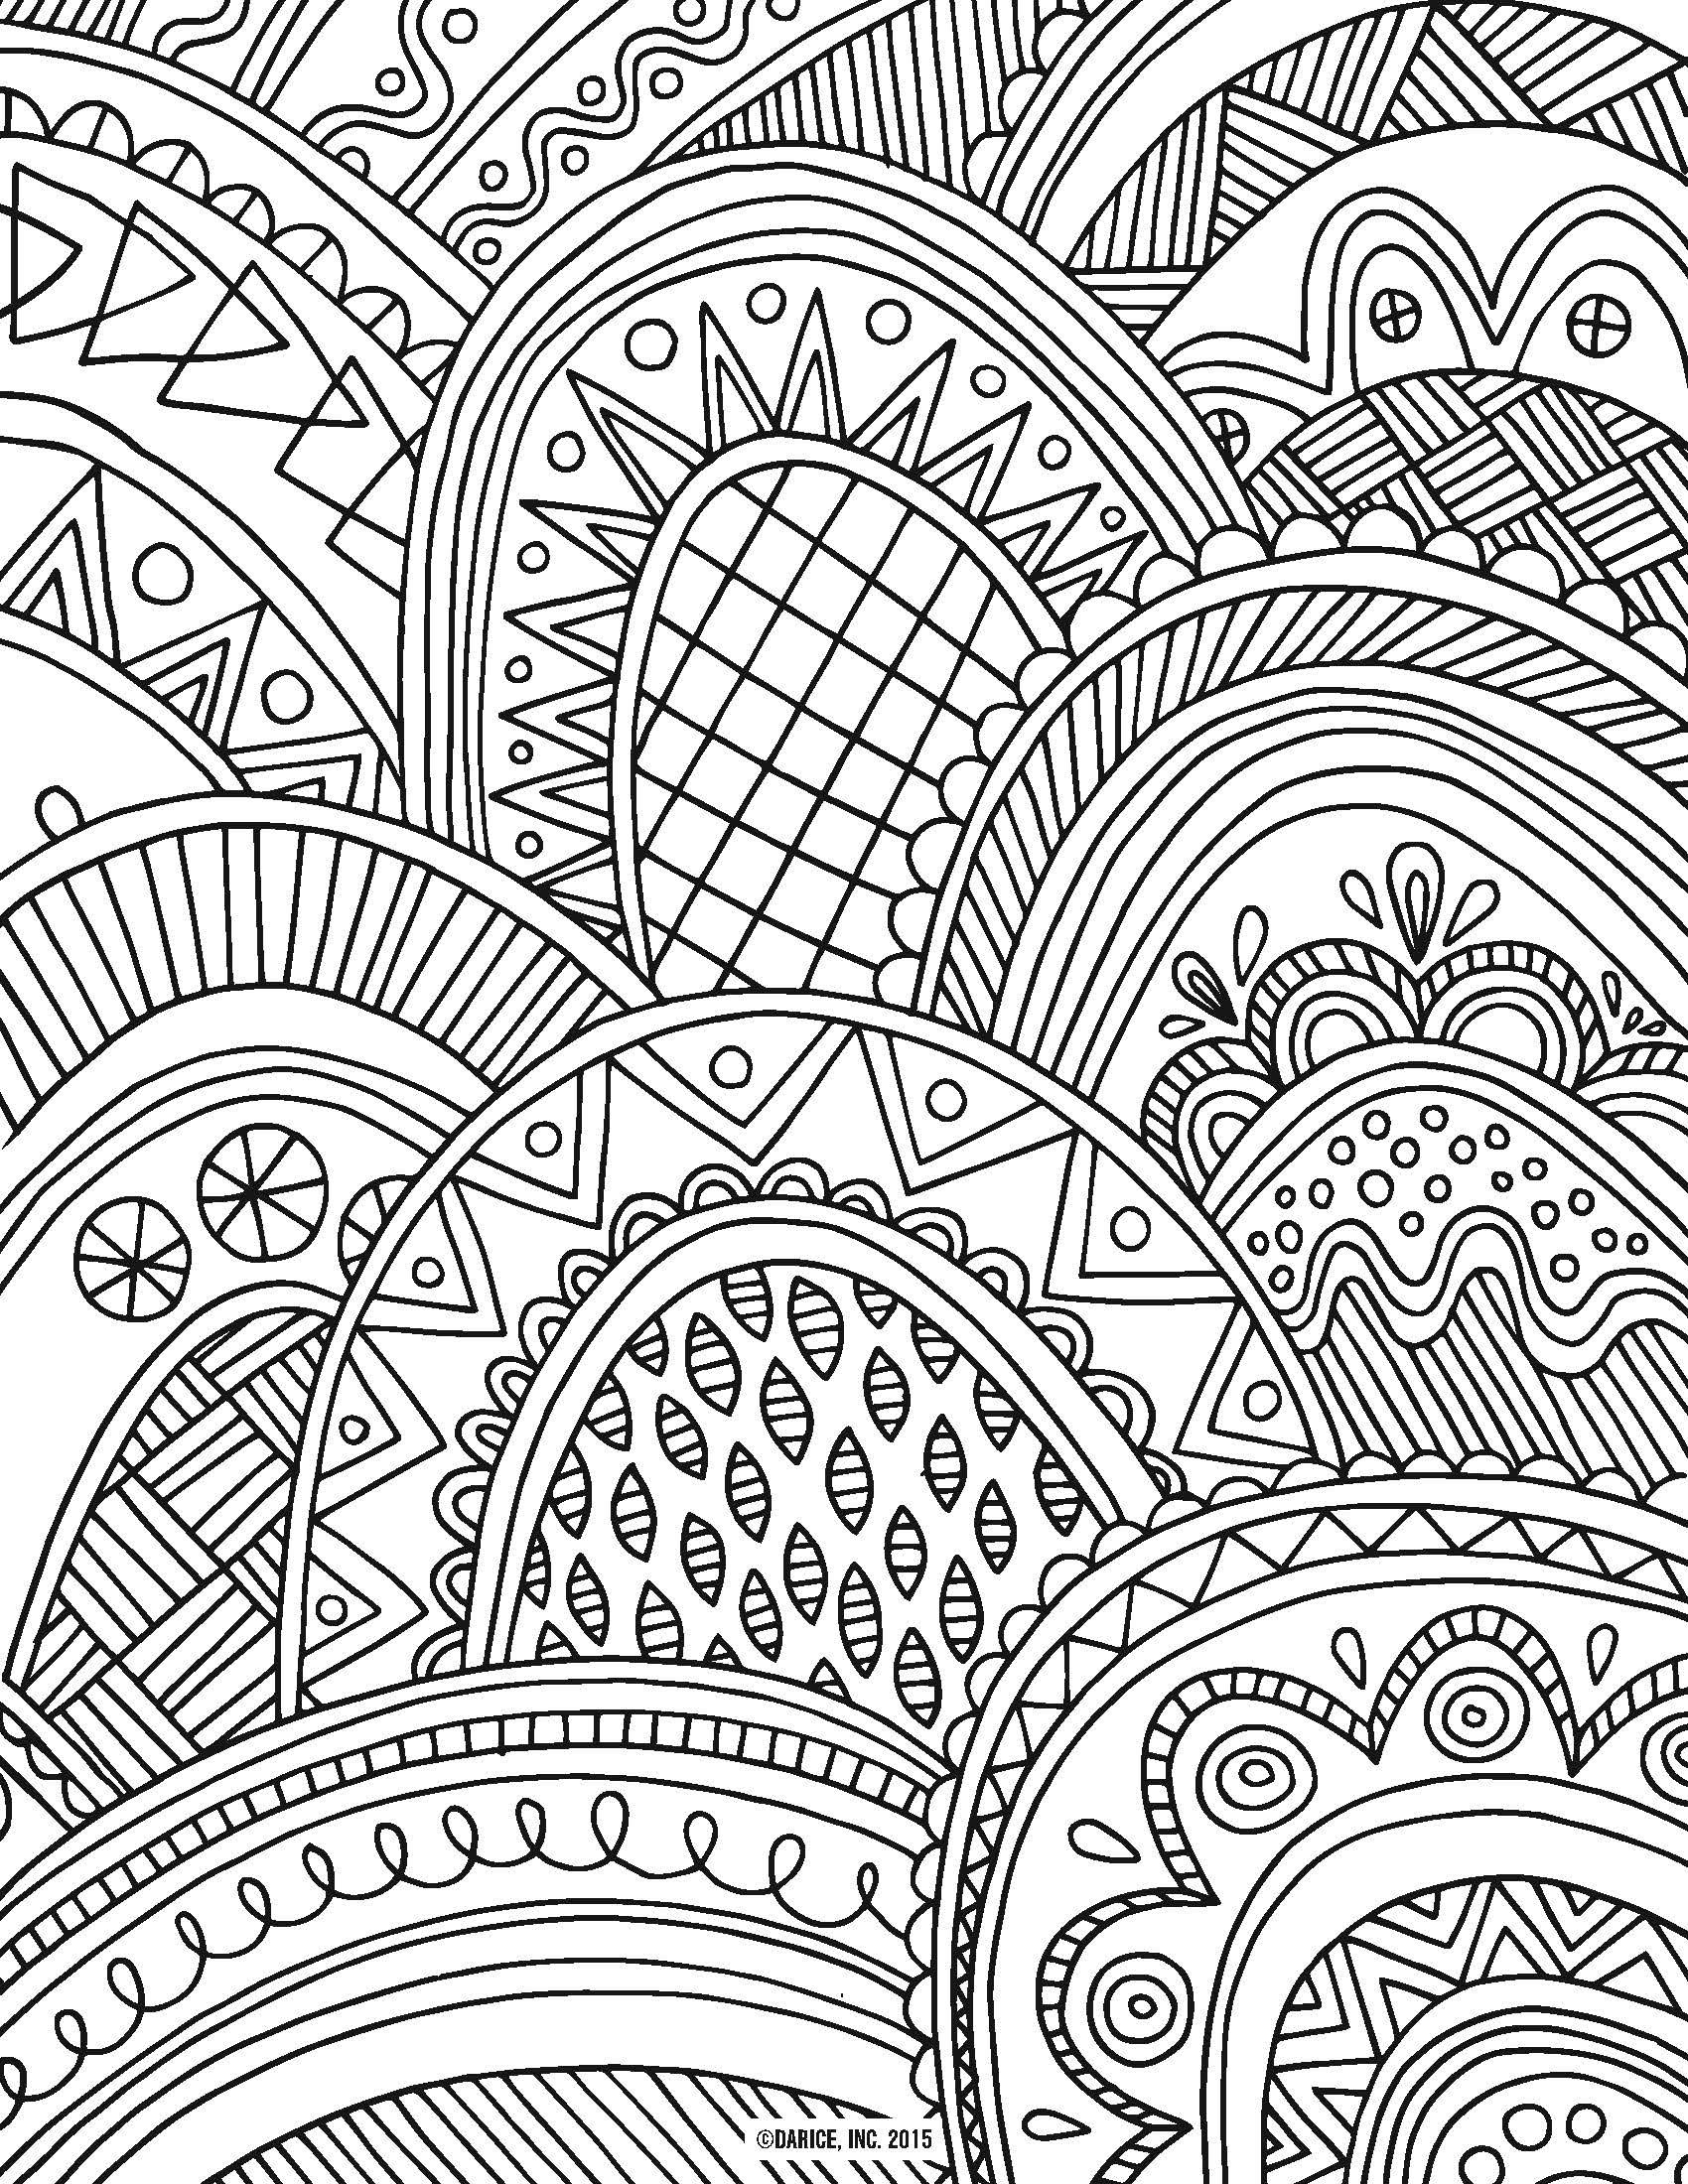 Try Out The Adult Coloring Book Trend For Yourself With Our 9 Free Pages Printable